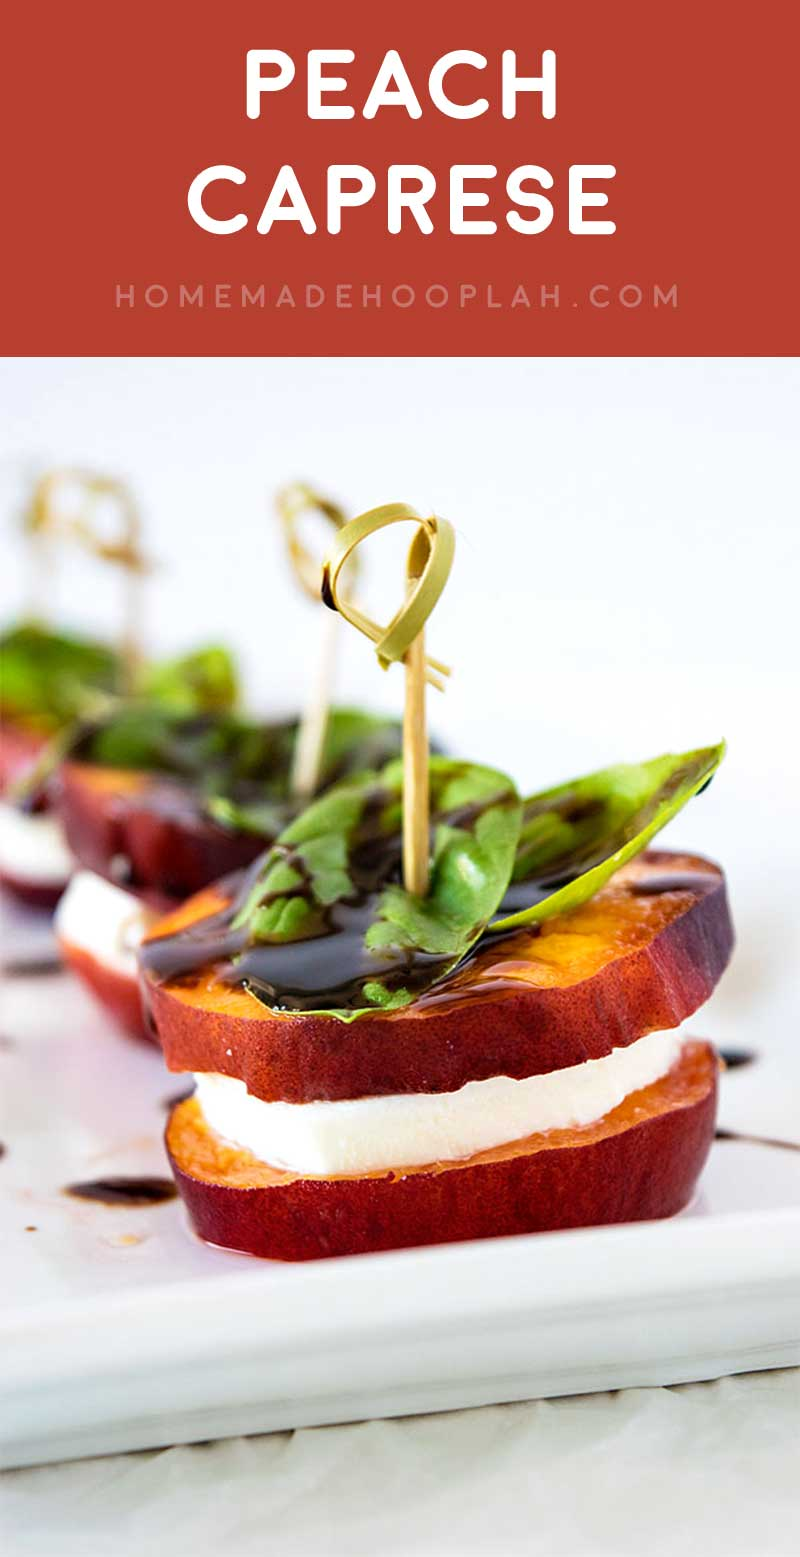 Peach Caprese! A fresh way to enjoy classic caprese, with juicy peaches, soft mozzarella, balsamic reduction, and fresh basil. Makes for a easy party appetizer! | HomemadeHooplah.com